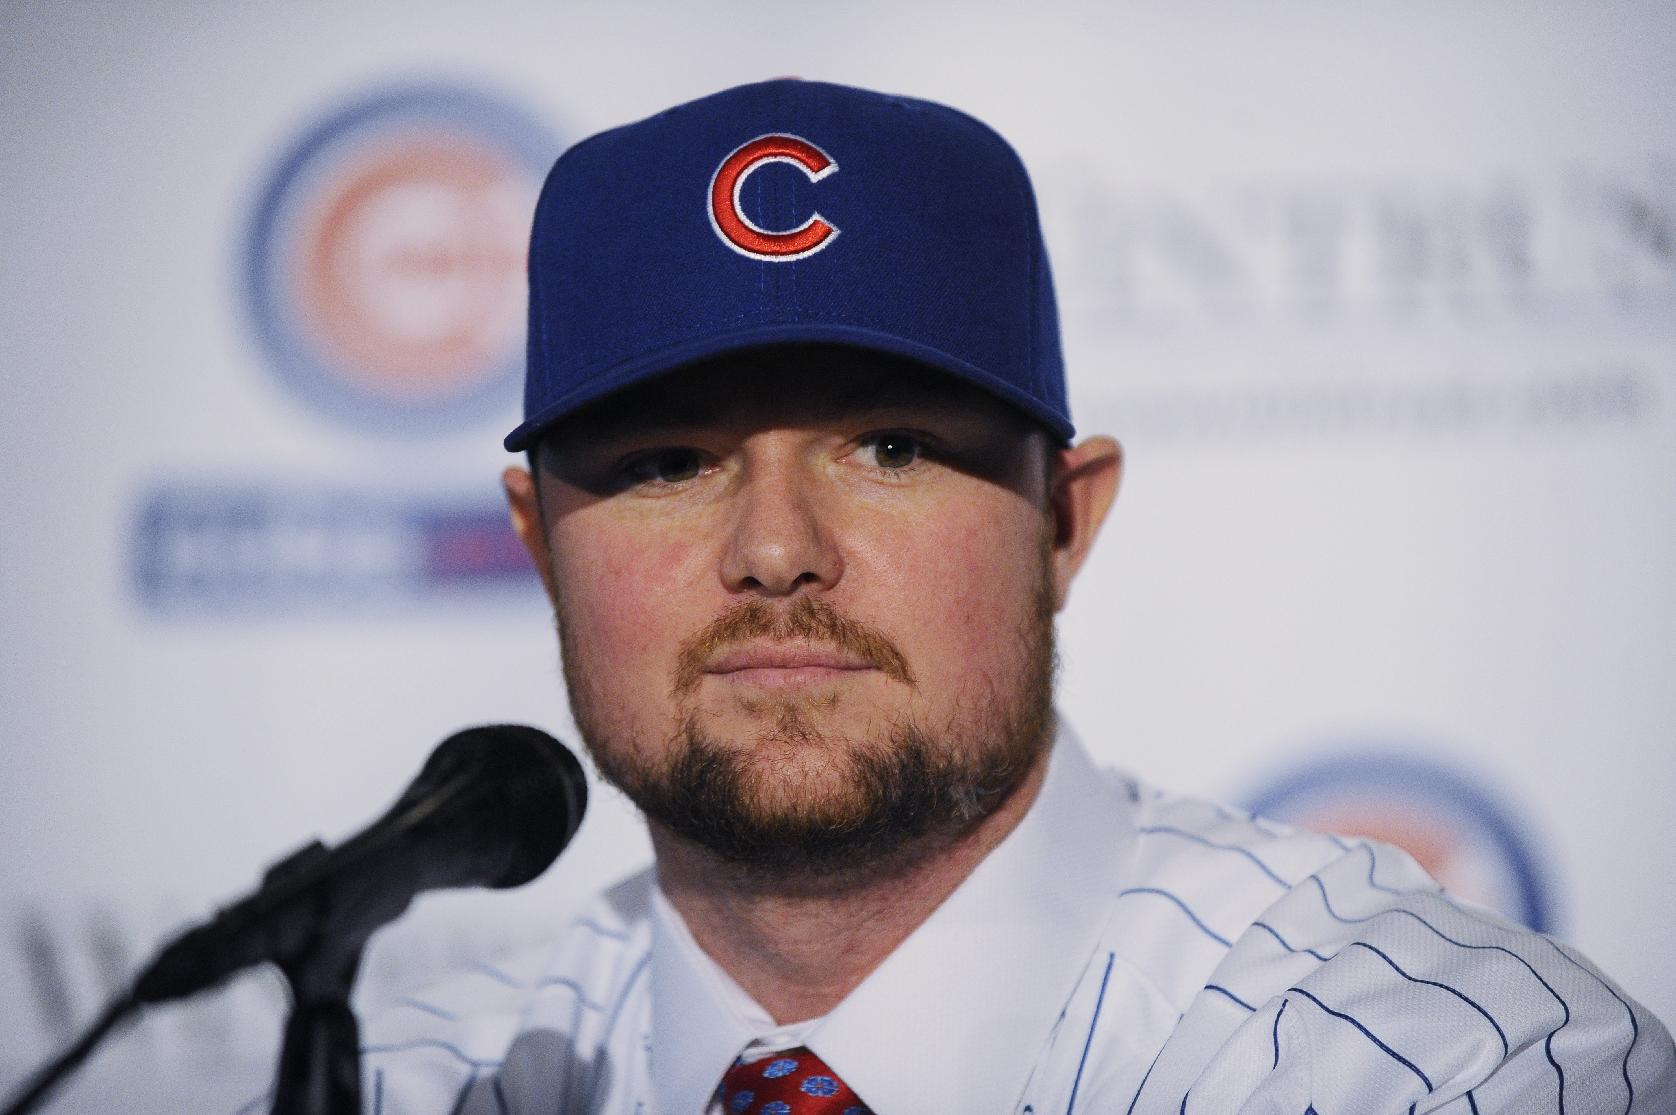 Pitcher Jon Lester attends an introduction press conference by the Chicago Cubs on December 15, 2014 in Chicago, Illinois